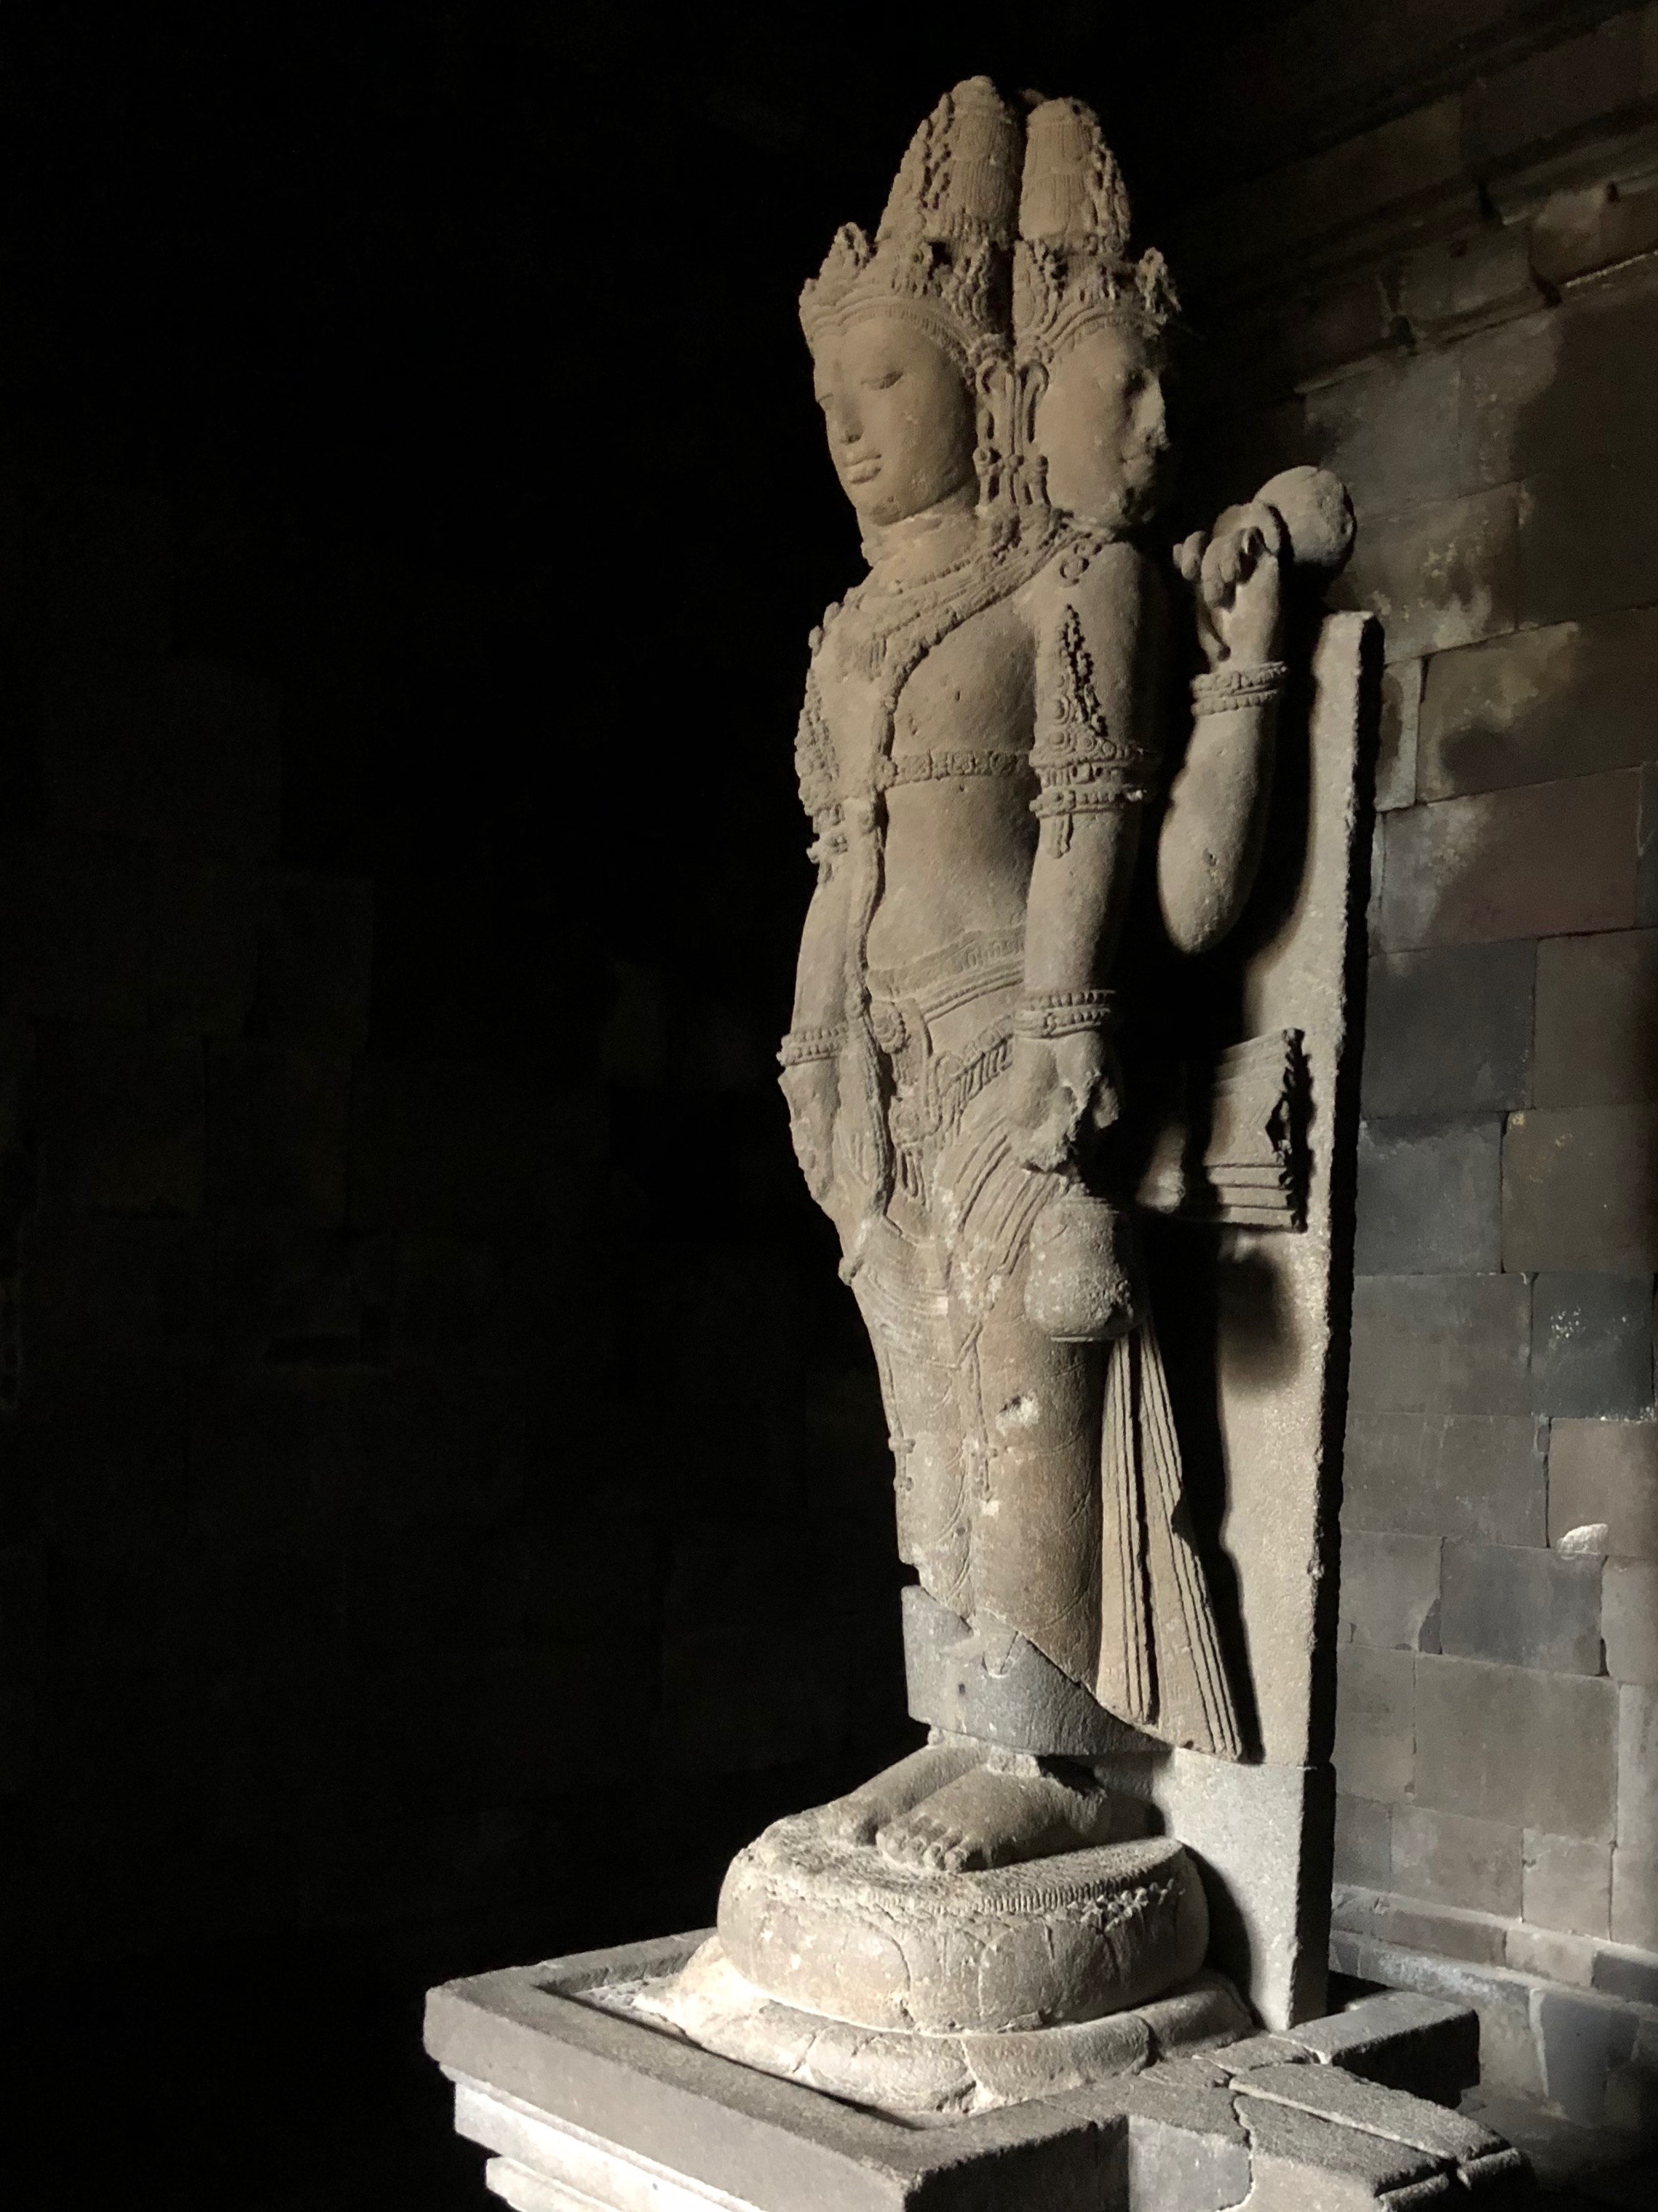 The statue of Brahma the Creator